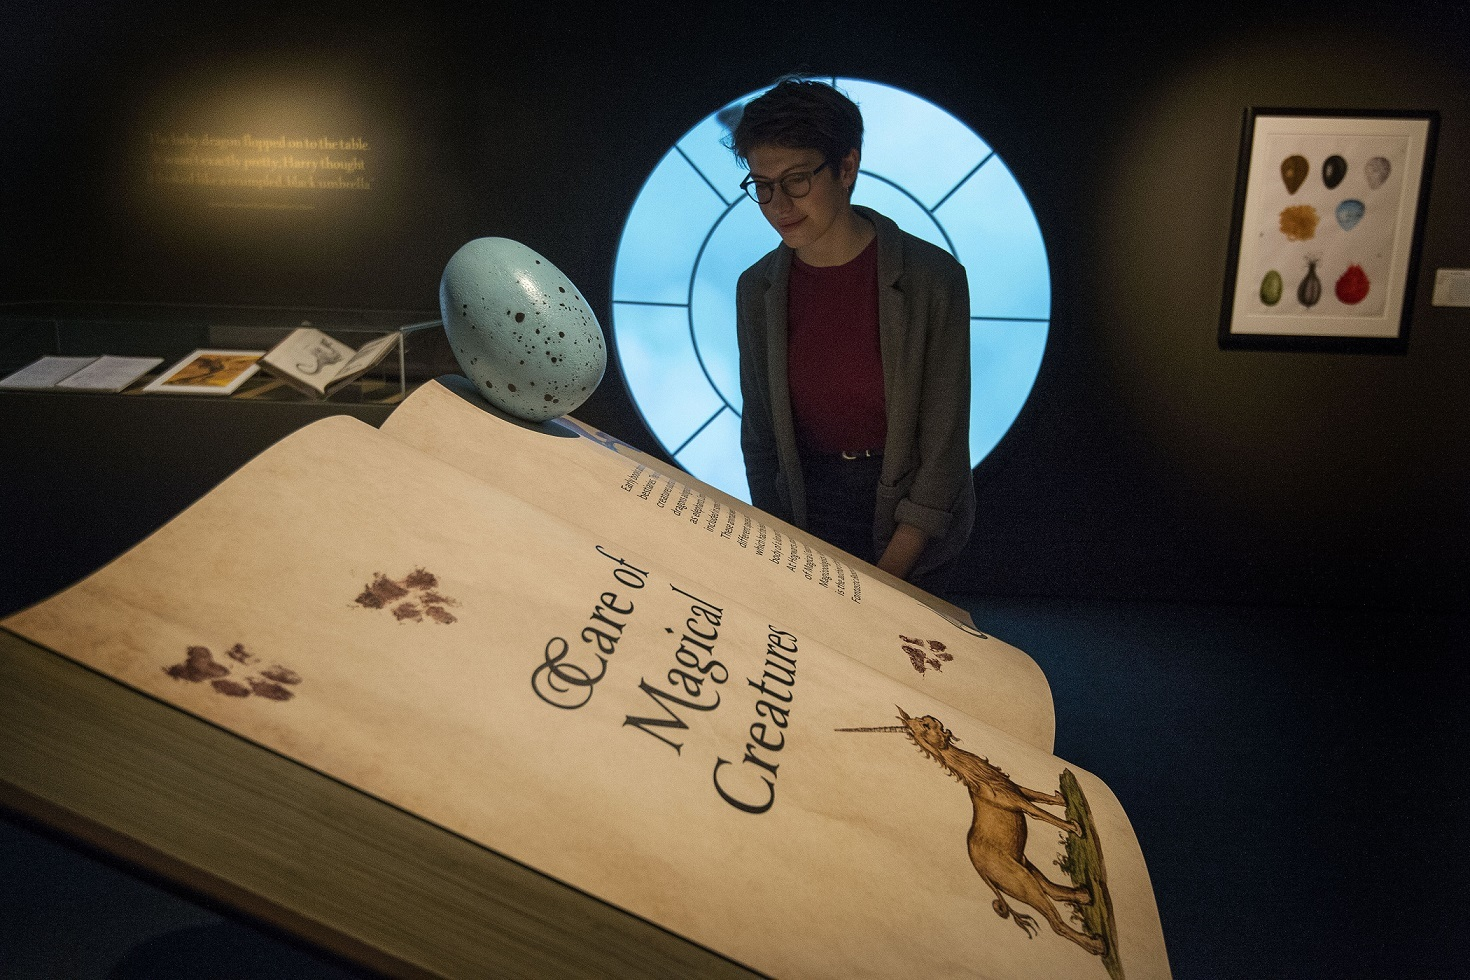 A visitor looks at a book of Care Of Magical Creatures during a press preview for the Harry Potter: A History of Magic exhibition at the British Library (Victoria Jones/PA)